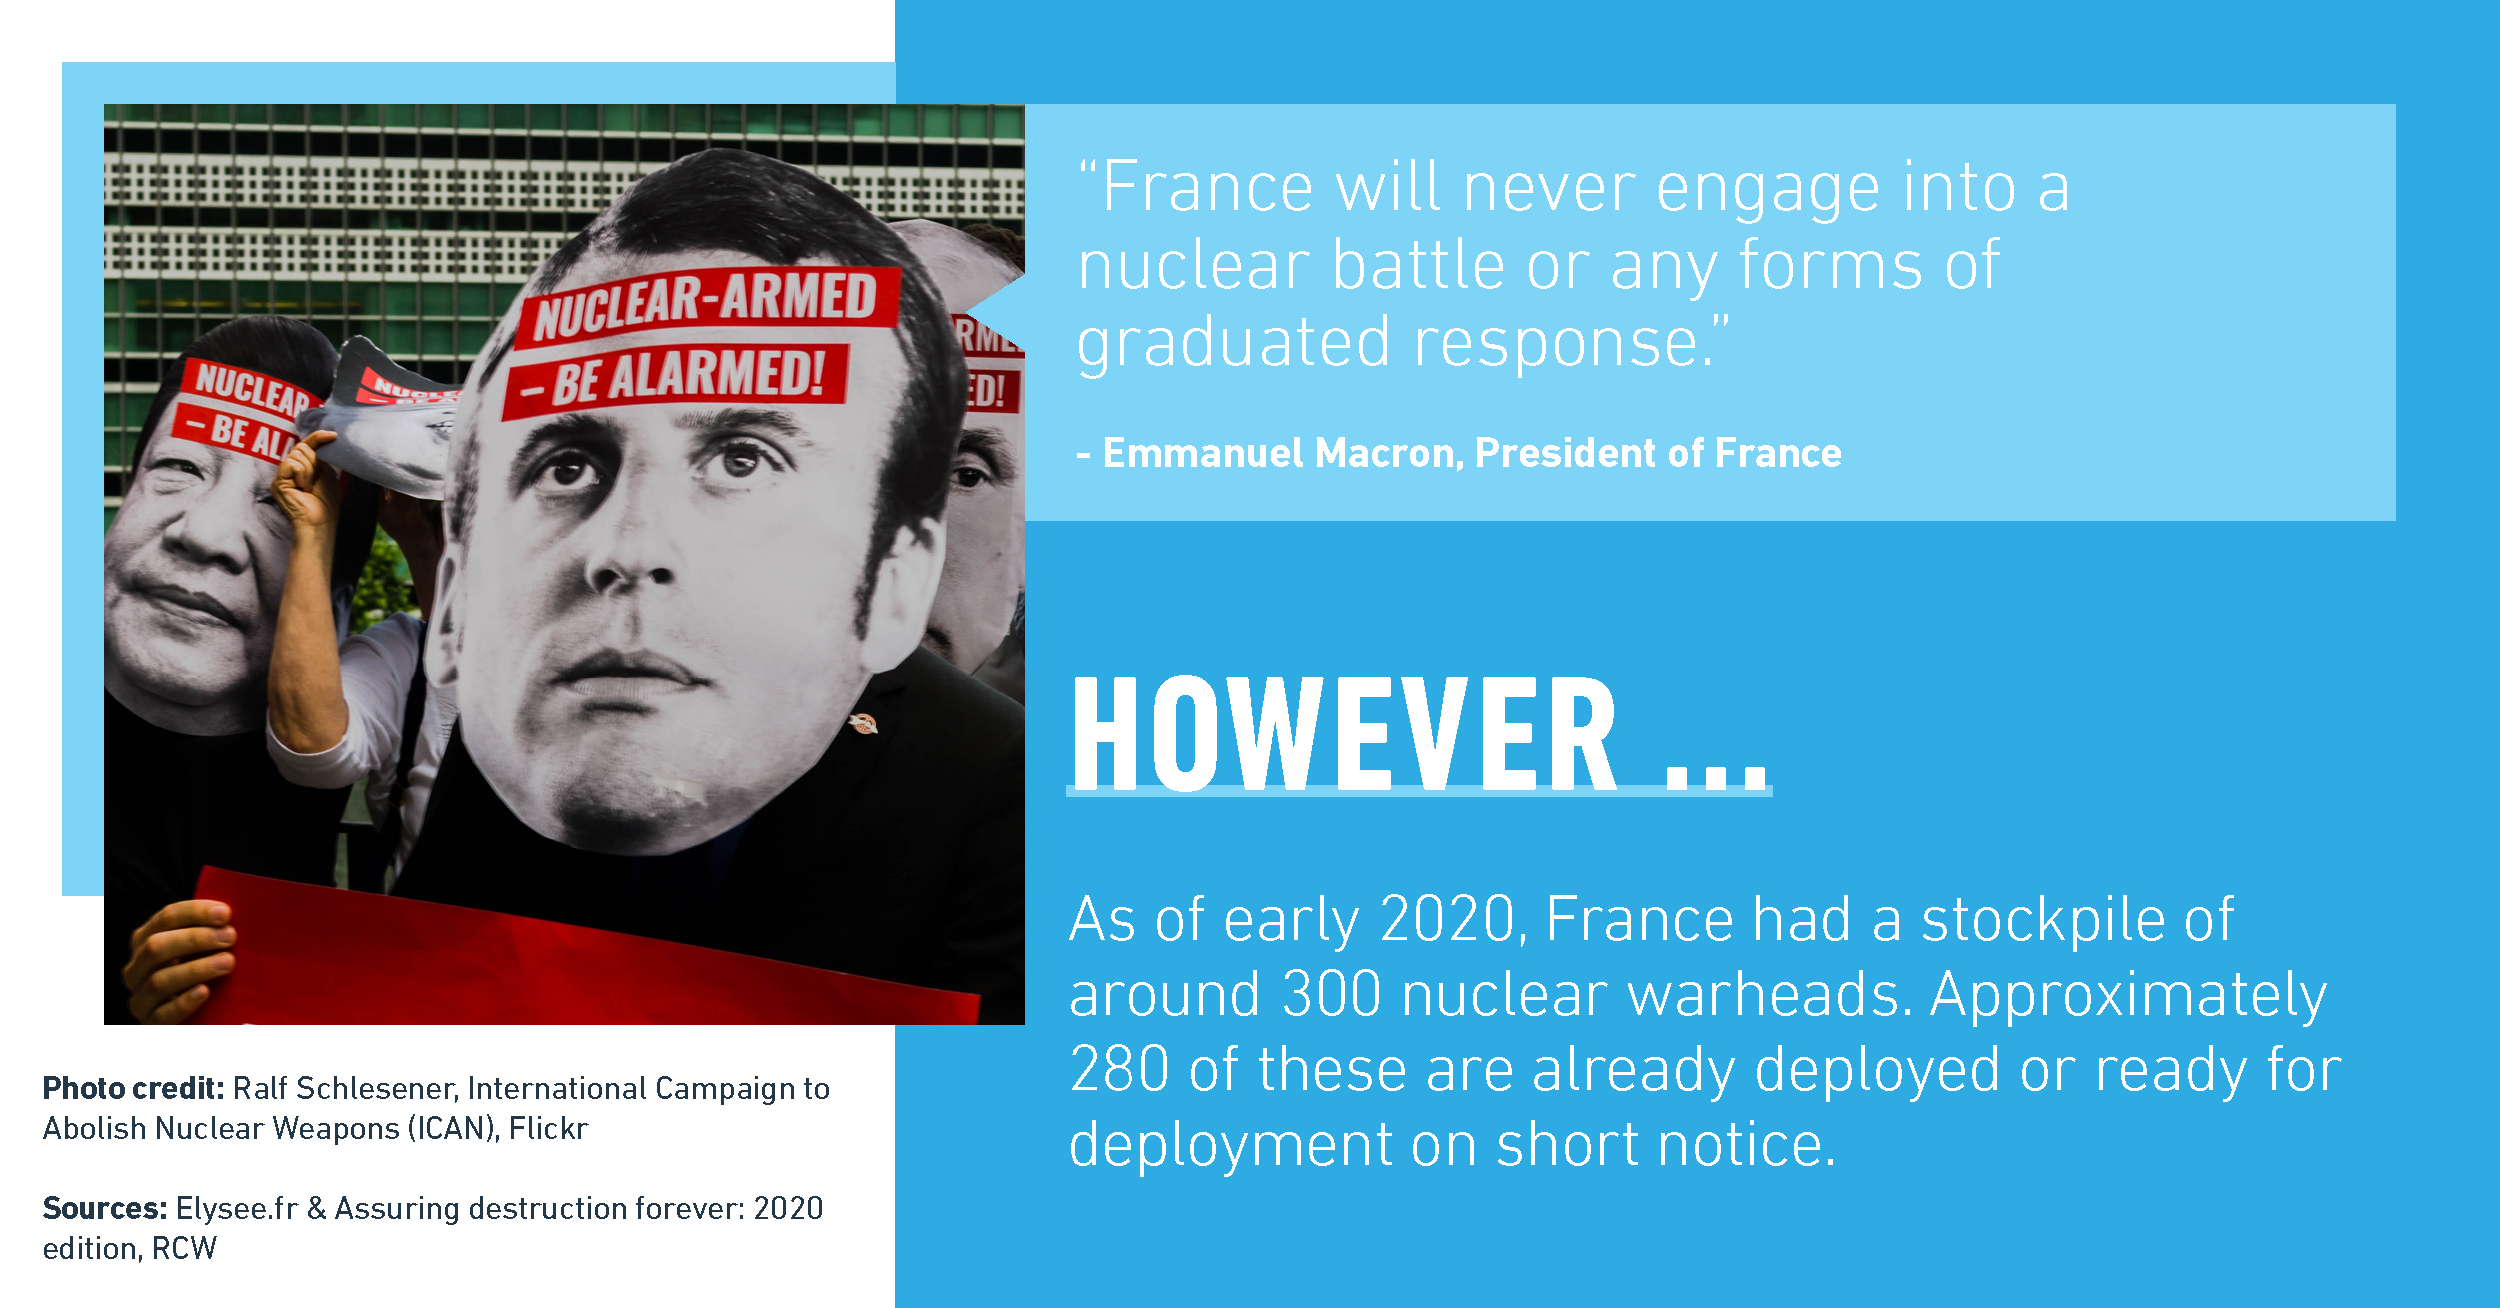 """Illustration sample from campaign: """"France will never engage into a nuclear battle or any forms of graduated response."""" says Emmanuel Macron, President of France. Poster then states: However ... As of early 2020, france had a stockpile of around 300 nuclear warheads. Approximately 280 of these are already deployed or ready for deployment on short notice."""